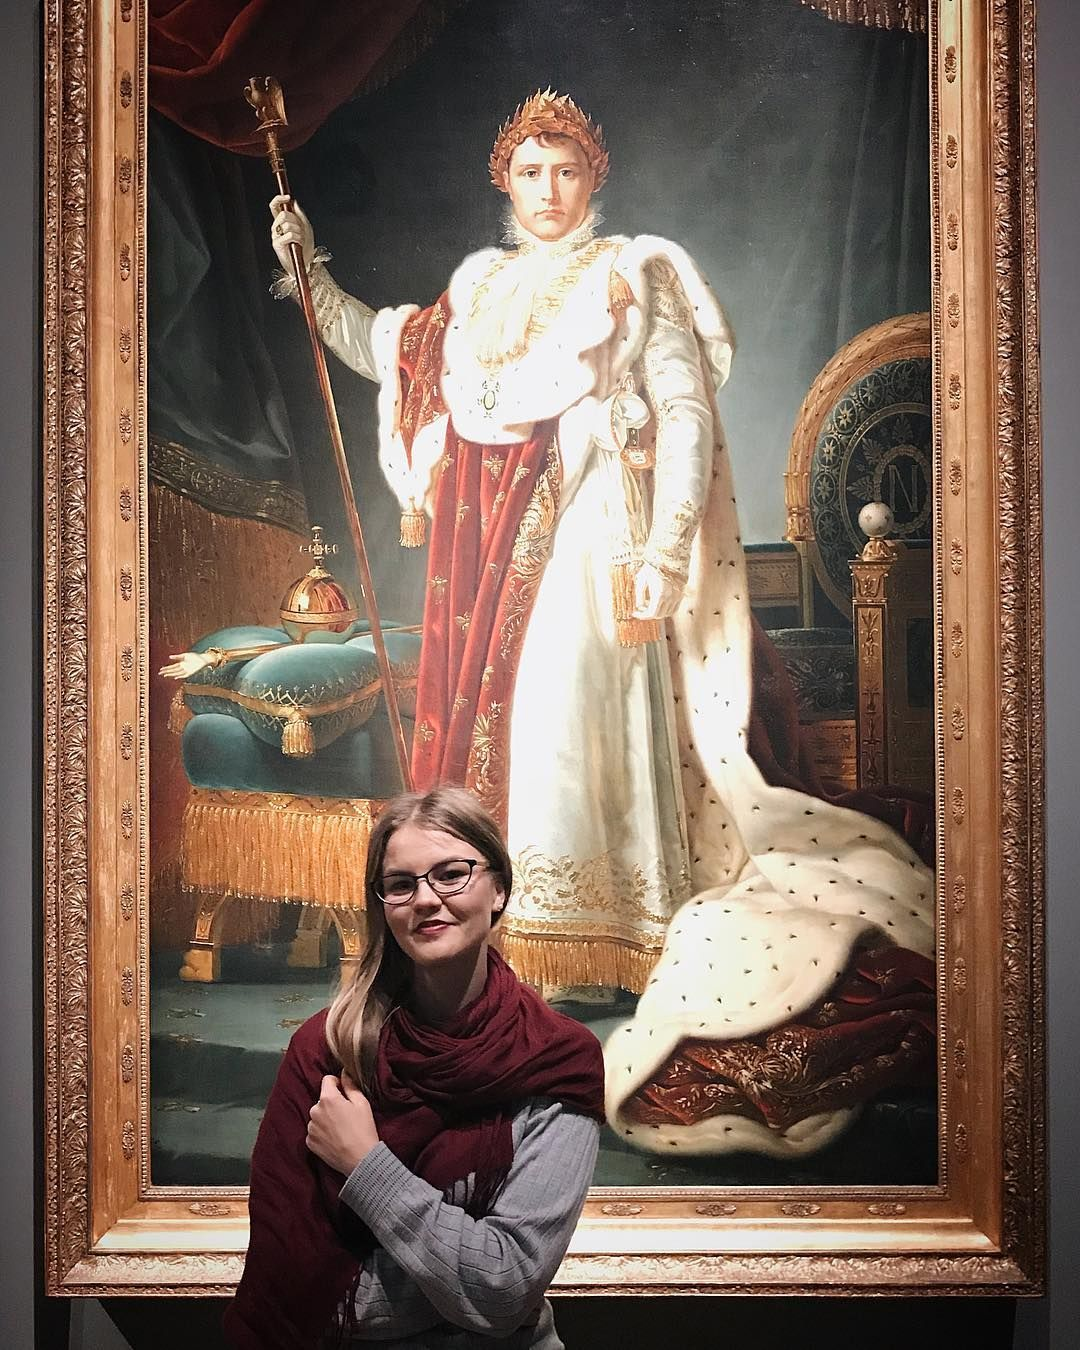 France Culture Game Of Thrones : france, culture, thrones, #napoleon, #bonaparte, #france, #girl, #europe, #museum, #culture, #famous, #history, #traveling, #gir…, Napoleon,, Character,, Thrones, Characters